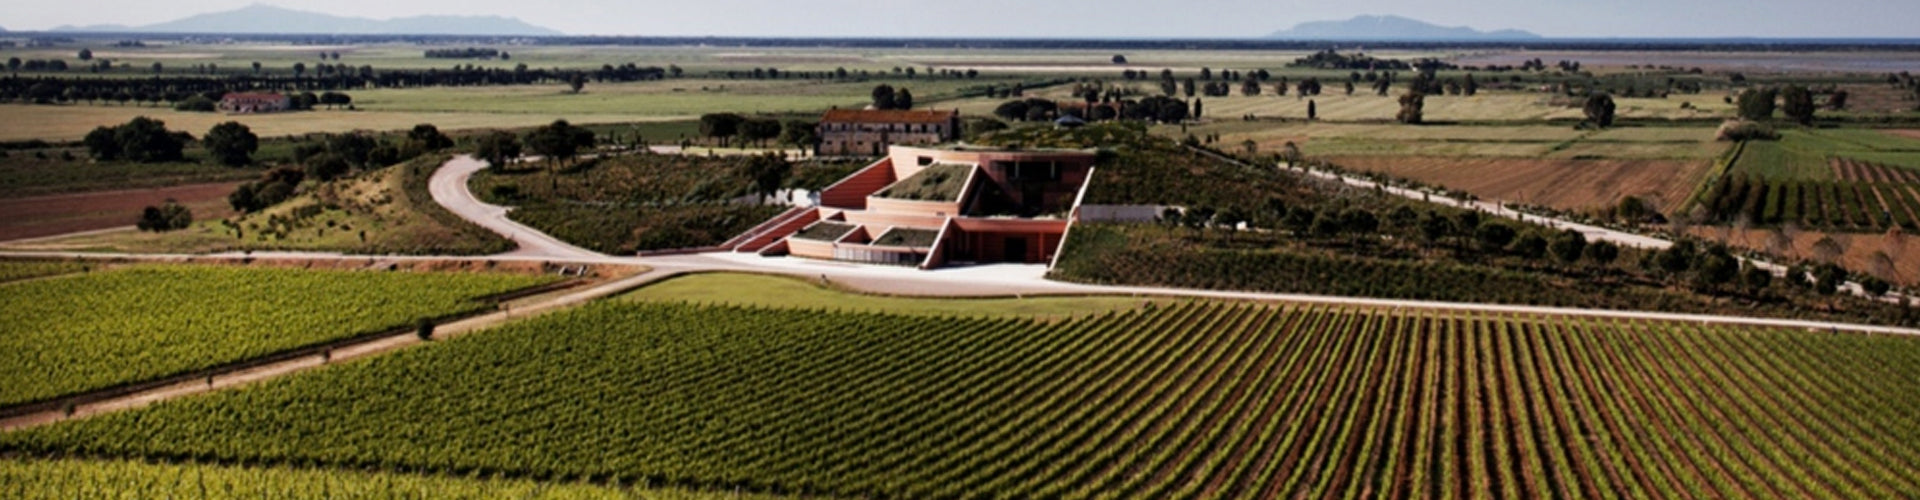 Antinori's Le Mortelle Winery and Vineyards in Maremma, Tuscany